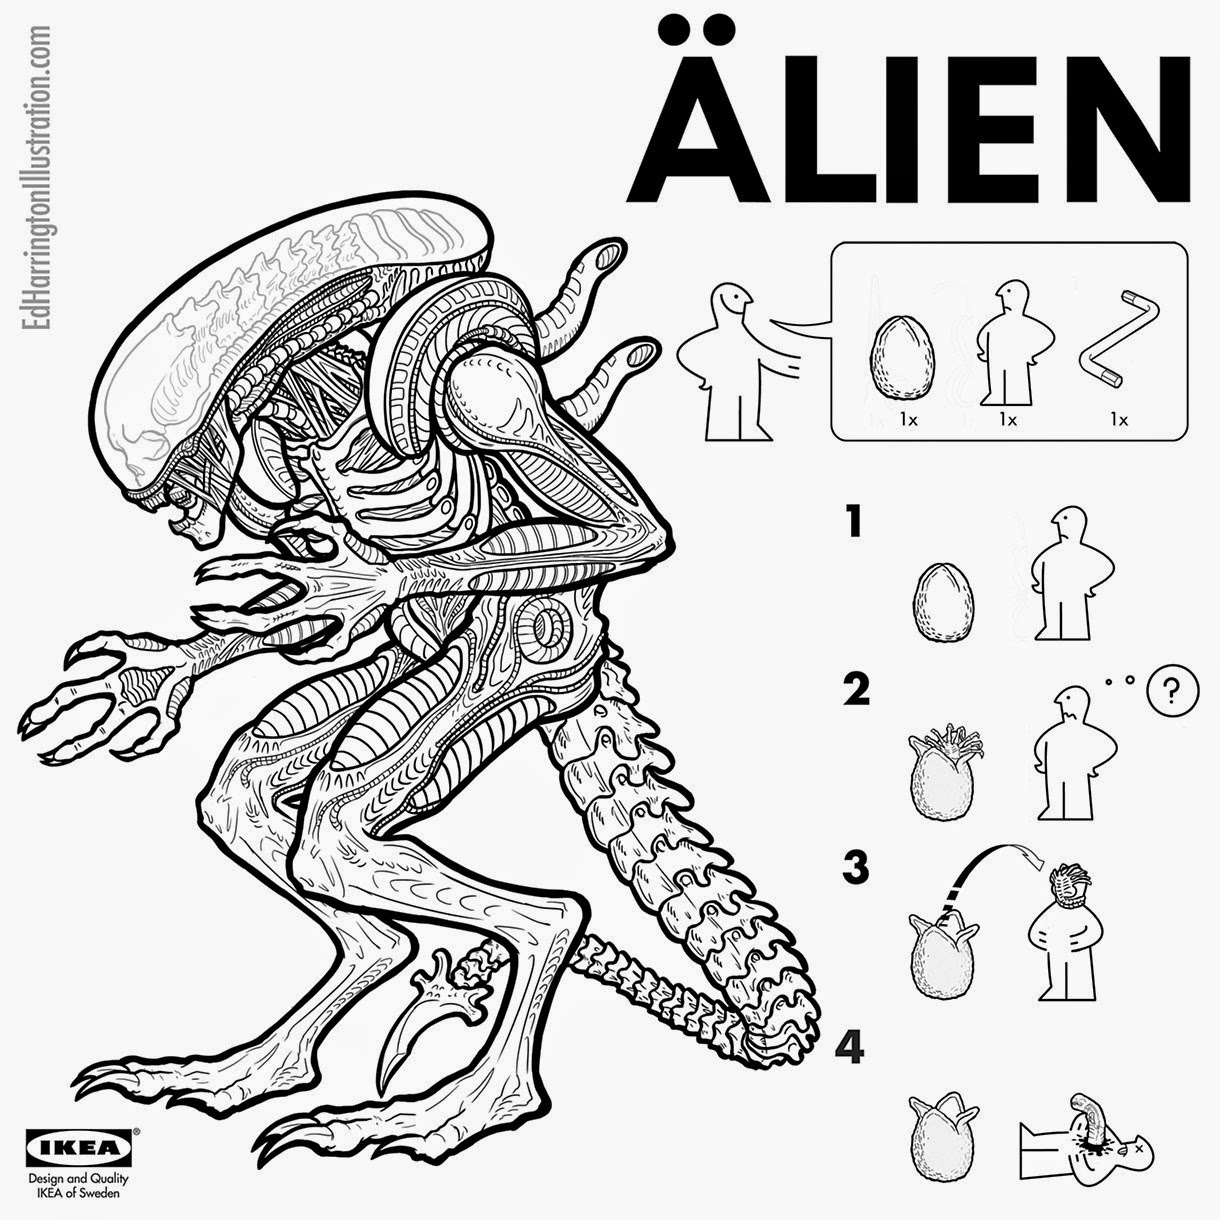 01-Alien-Ed-Harrington-Illustrations-Assemble-Monsters-with-IKEA-Instructions-www-designstack-co